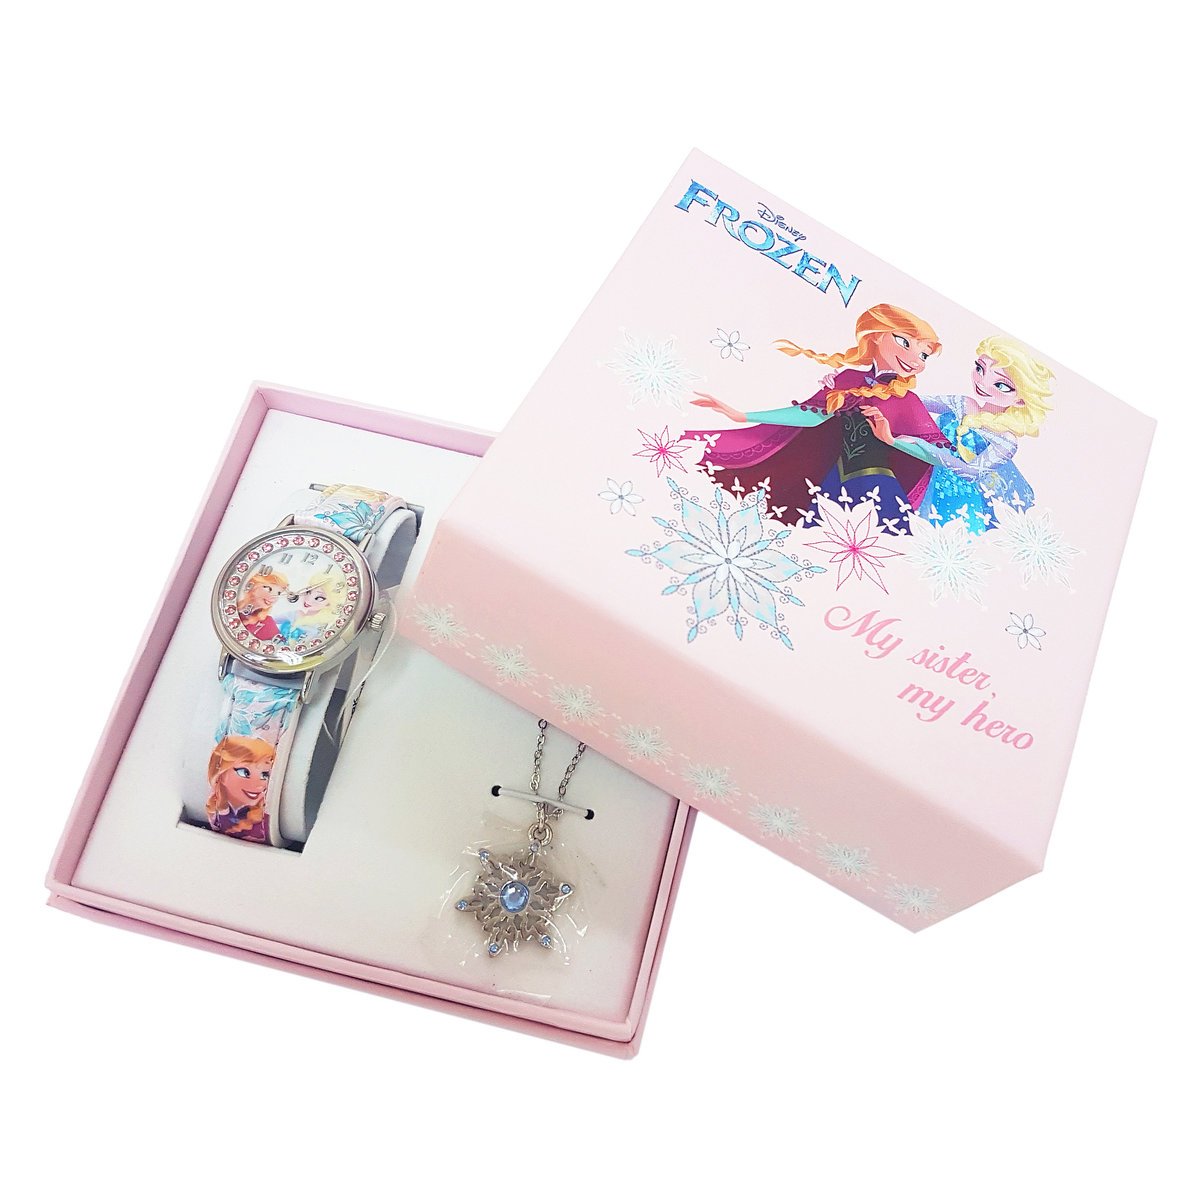 DISNEY FROZEN - Watch & necklace boxset - Pink color (Licensed by Disney)